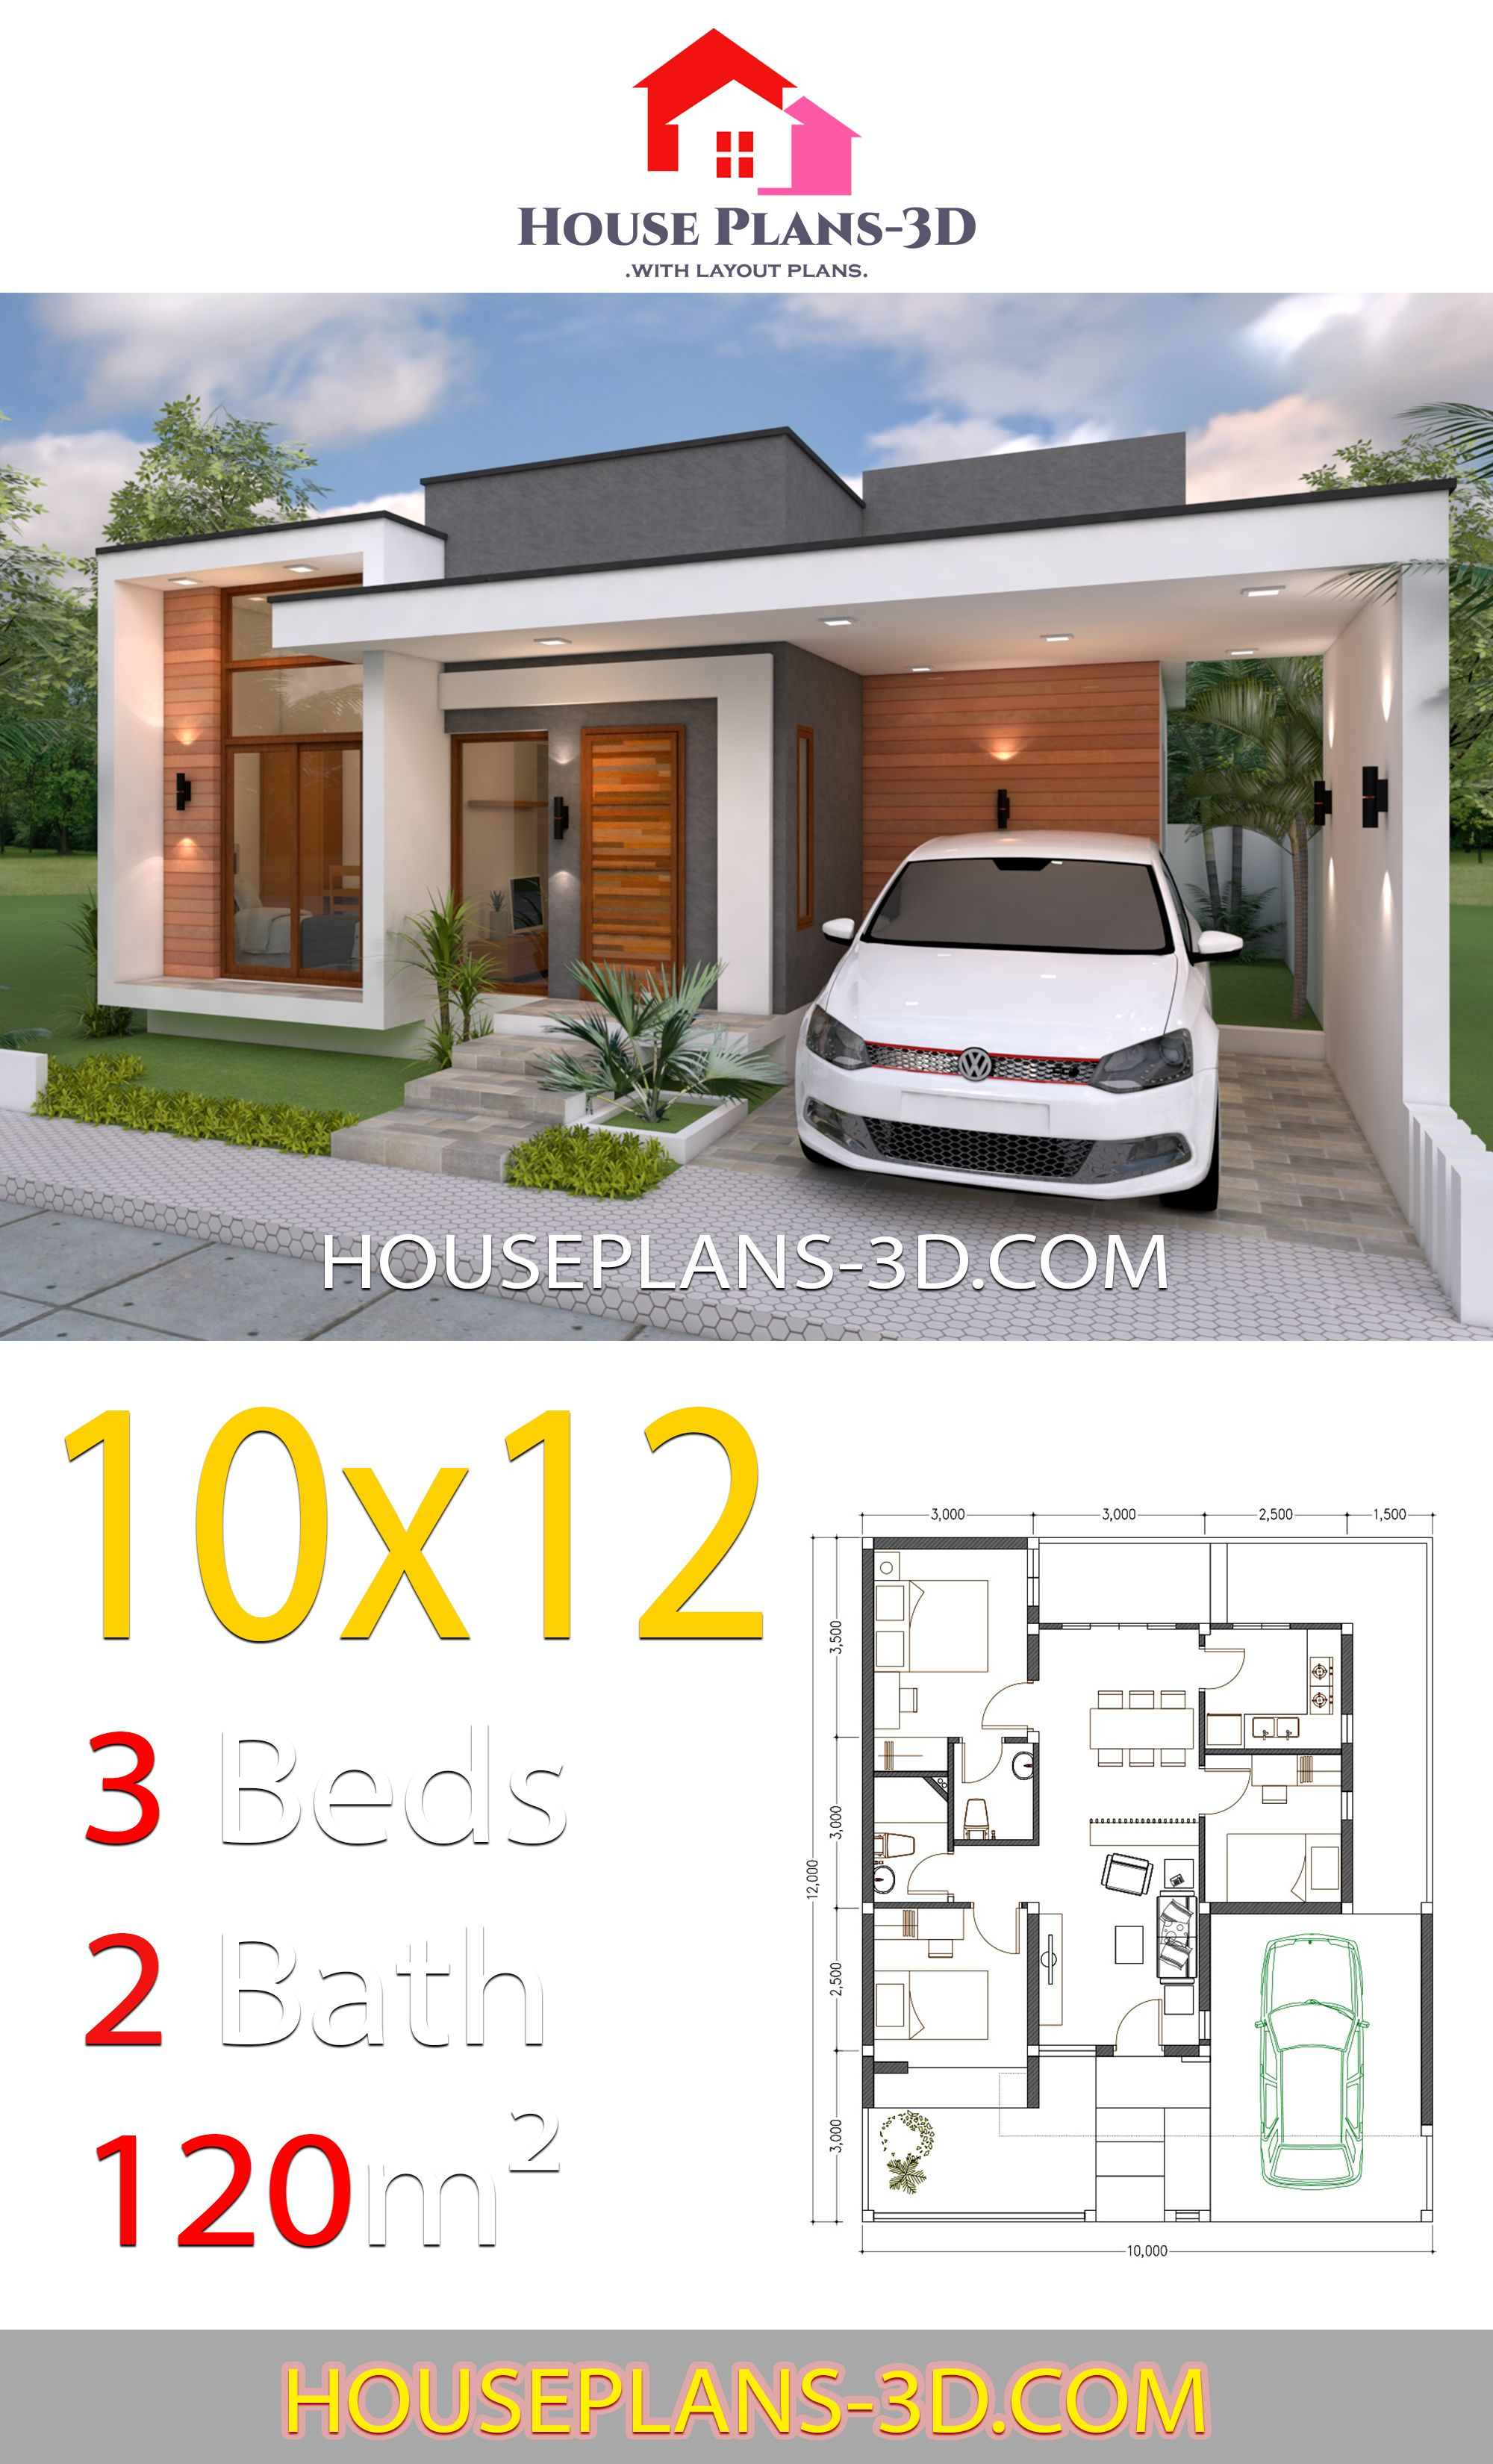 House Design 10x12 With 3 Bedrooms Terrace Roof House Plans 3d In 2020 House Plans House Construction Plan House Plan Gallery